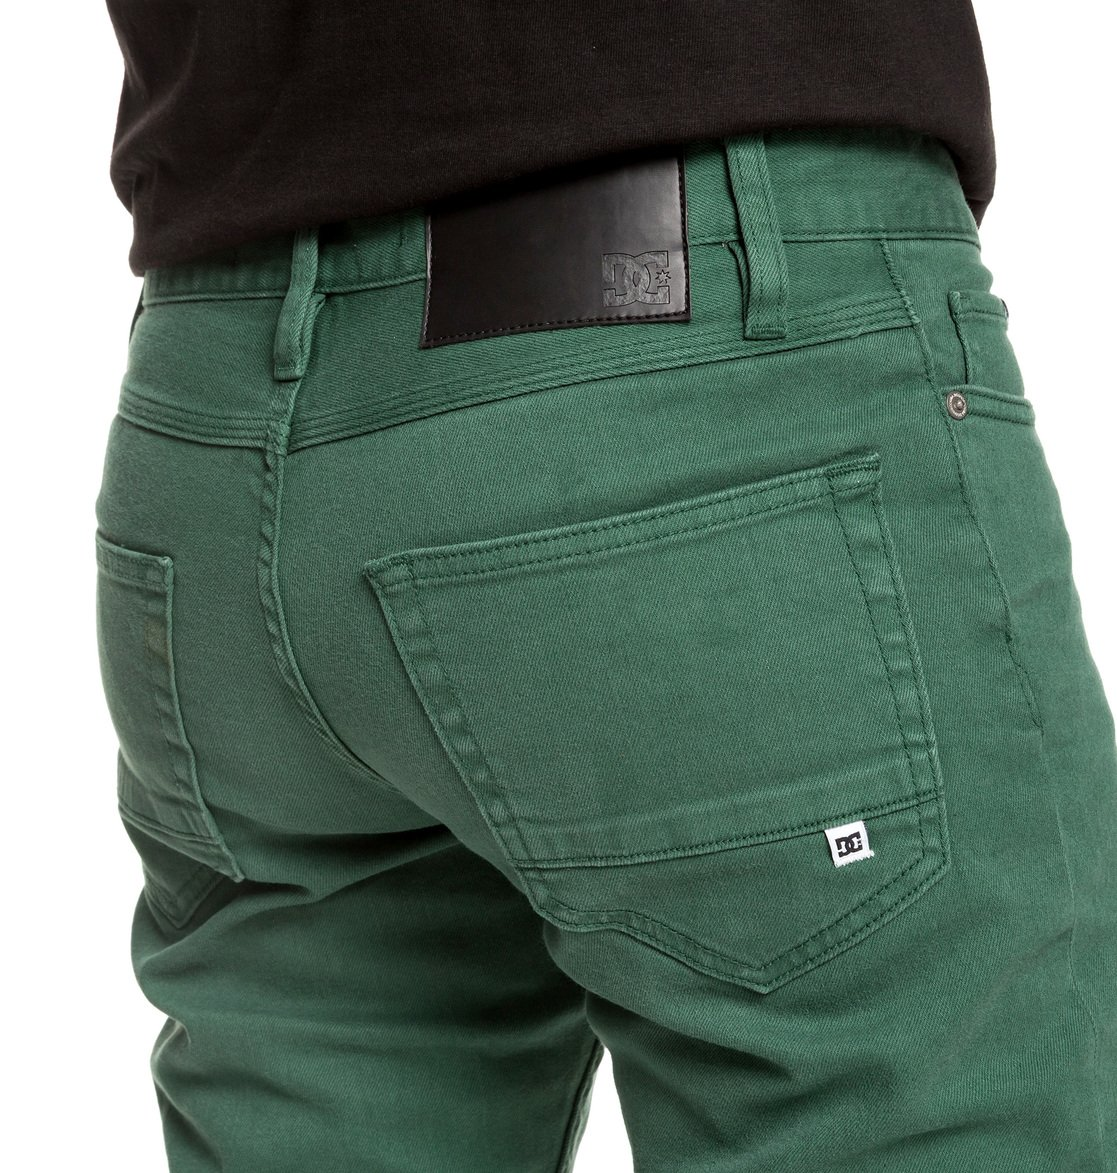 DC-Shoes-Sumner-Straight-Fit-Jeans-for-Men-Jeans-mit-Straight-Fit-Maenner